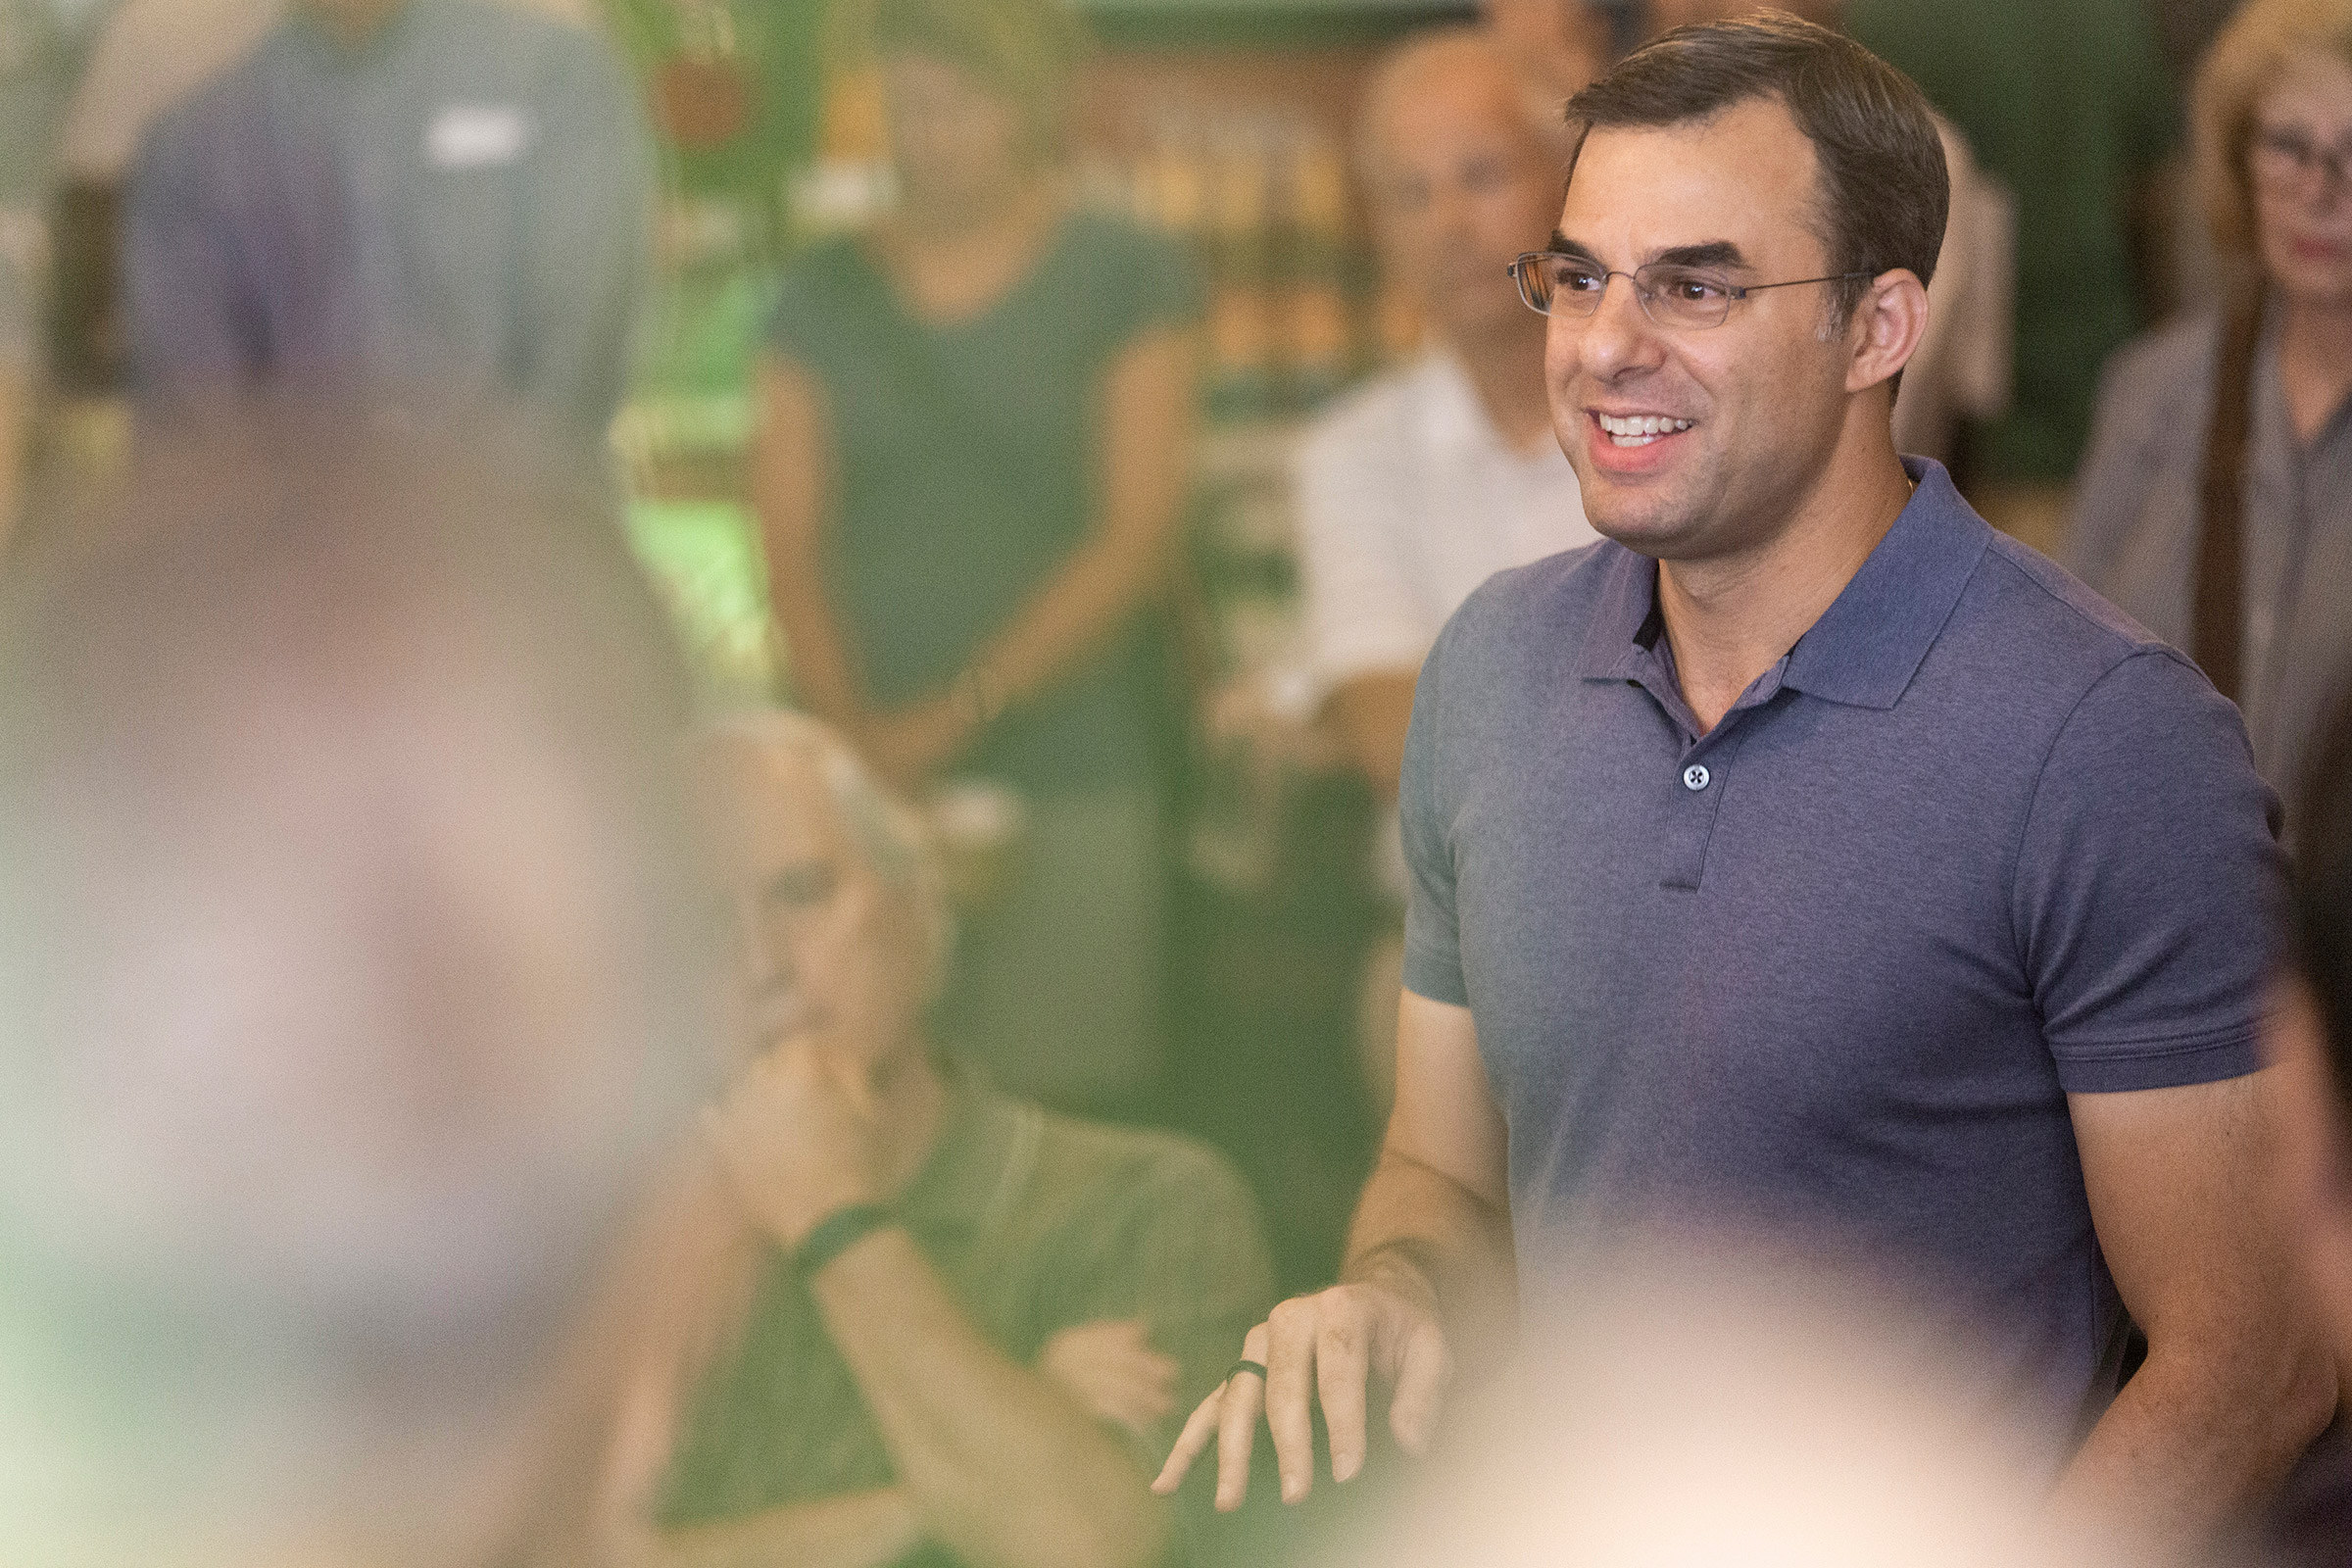 'Of all the years I've been in office, I'm the happiest now.'—Justin Amash,                      on leaving the Republican Party to become an independent